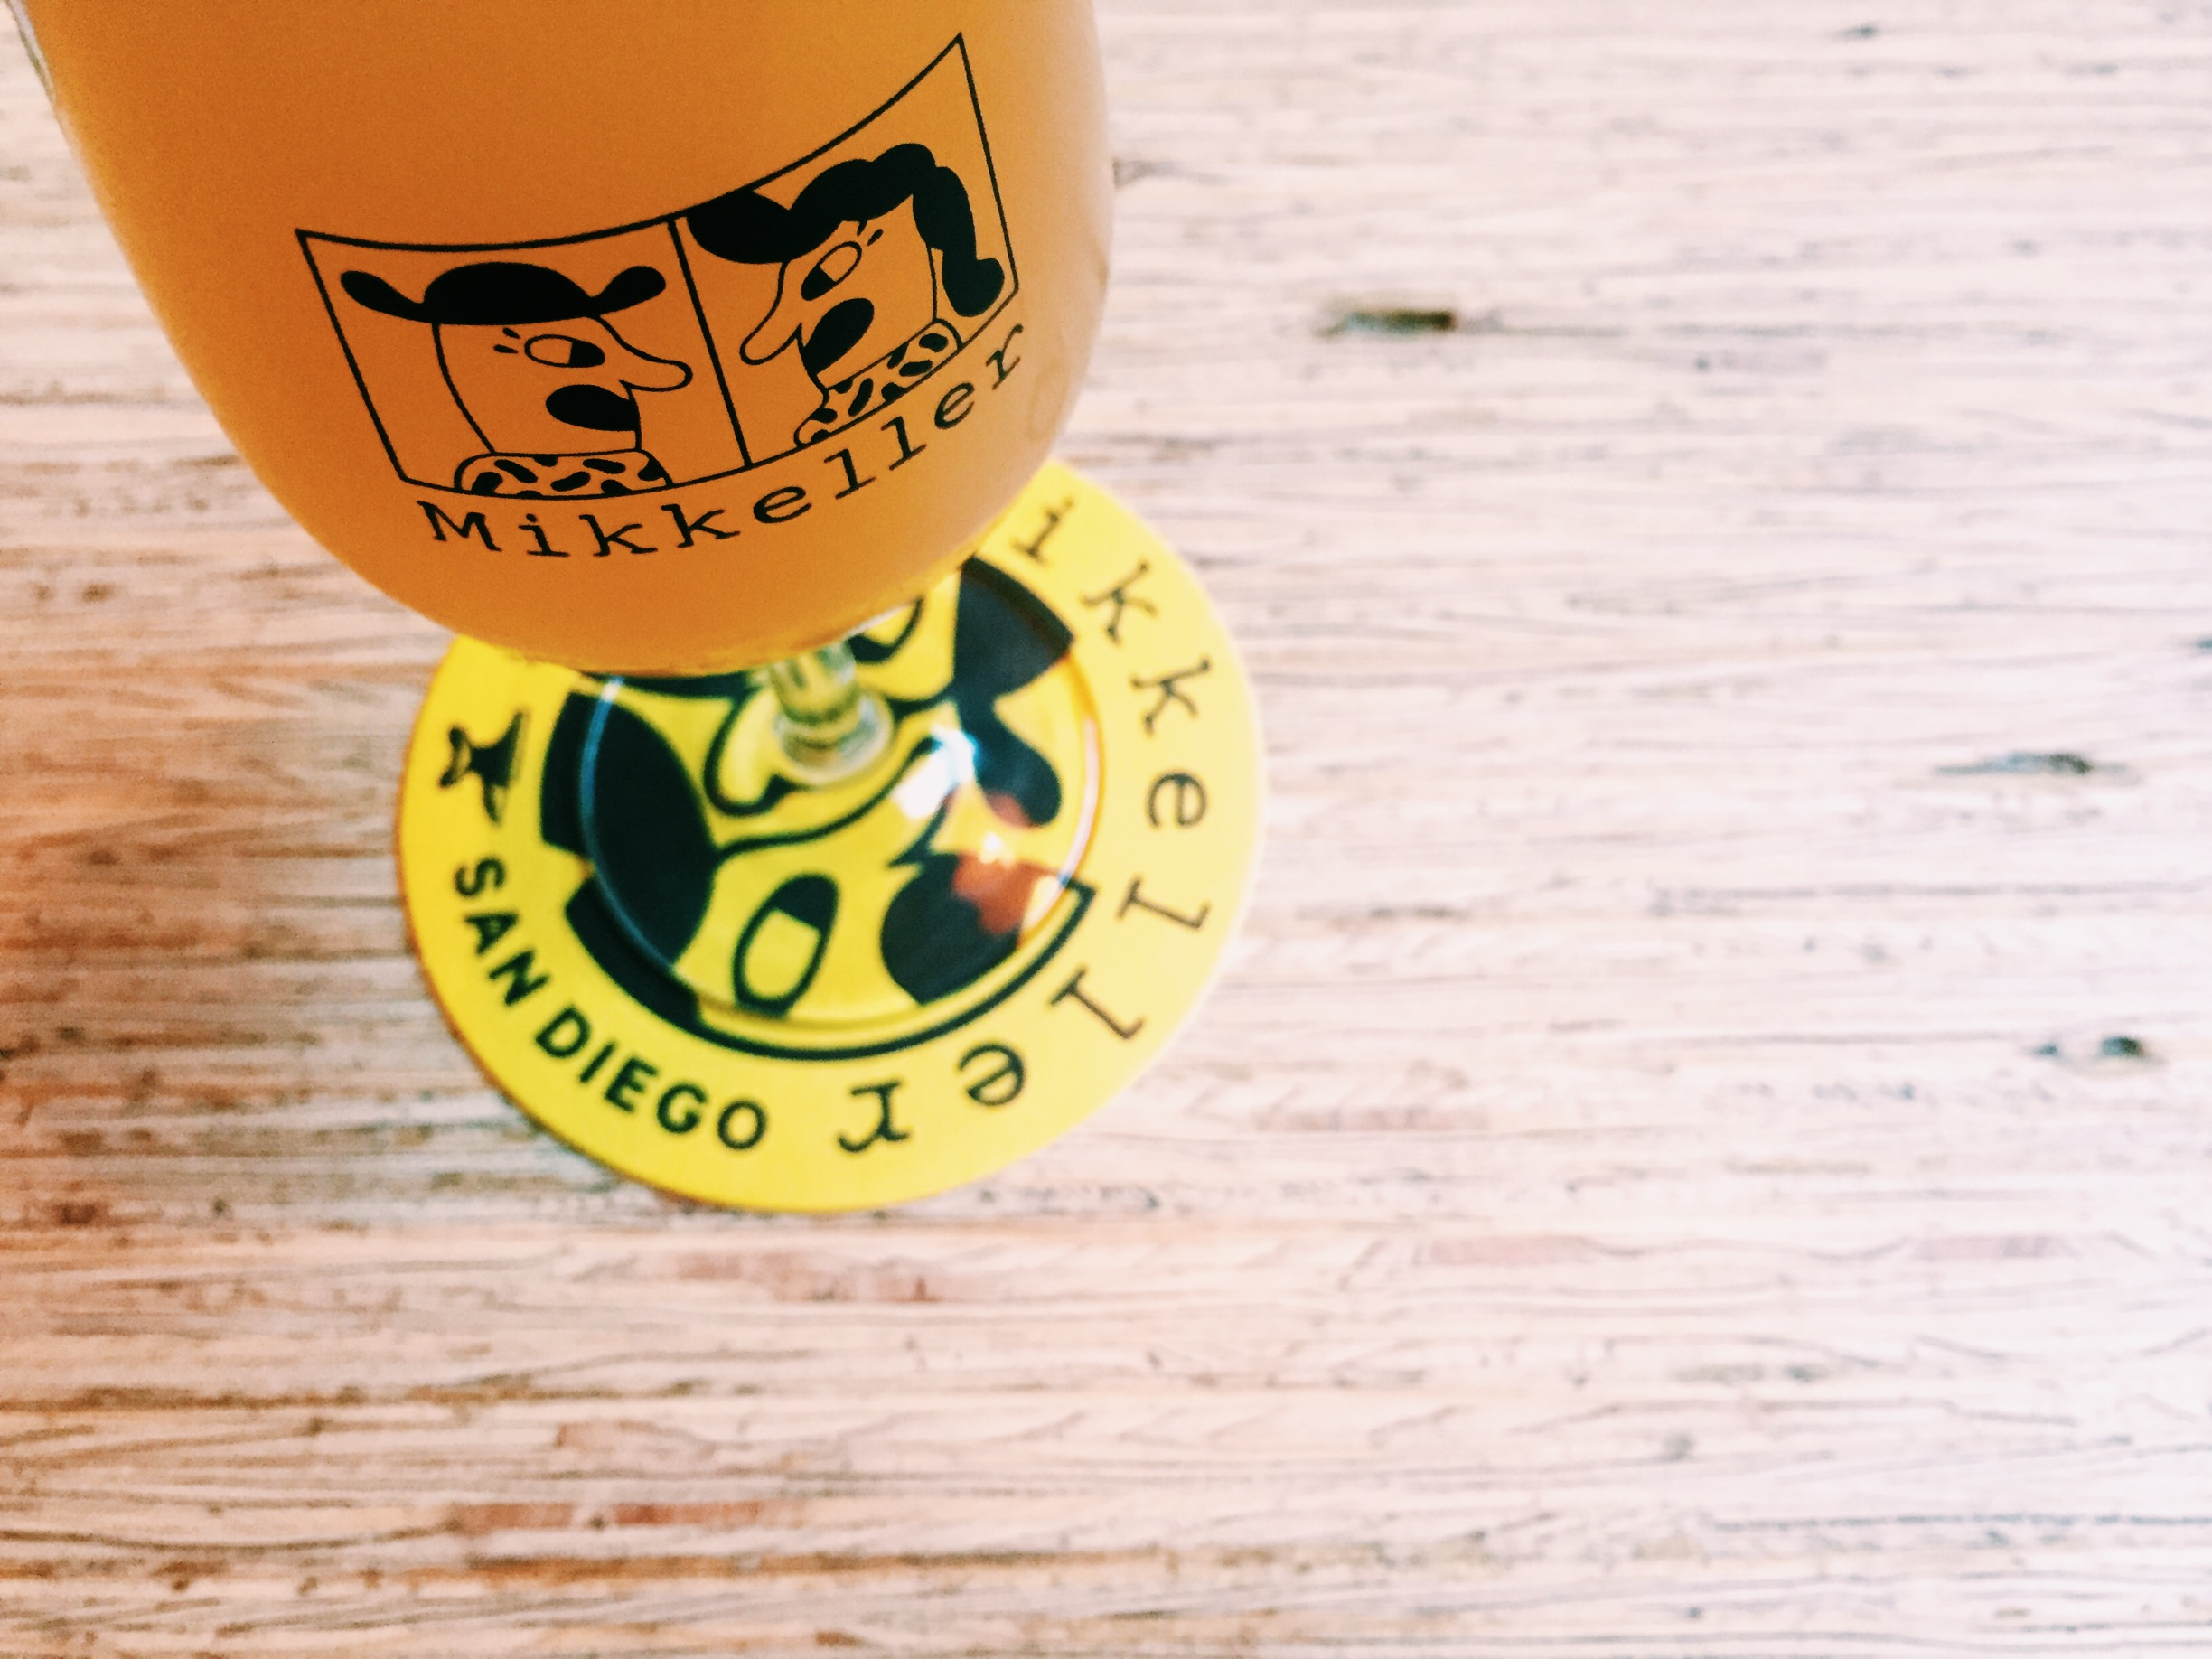 Mikkeller beer is fantastic; this was one of many trips to the Stefansgade location.